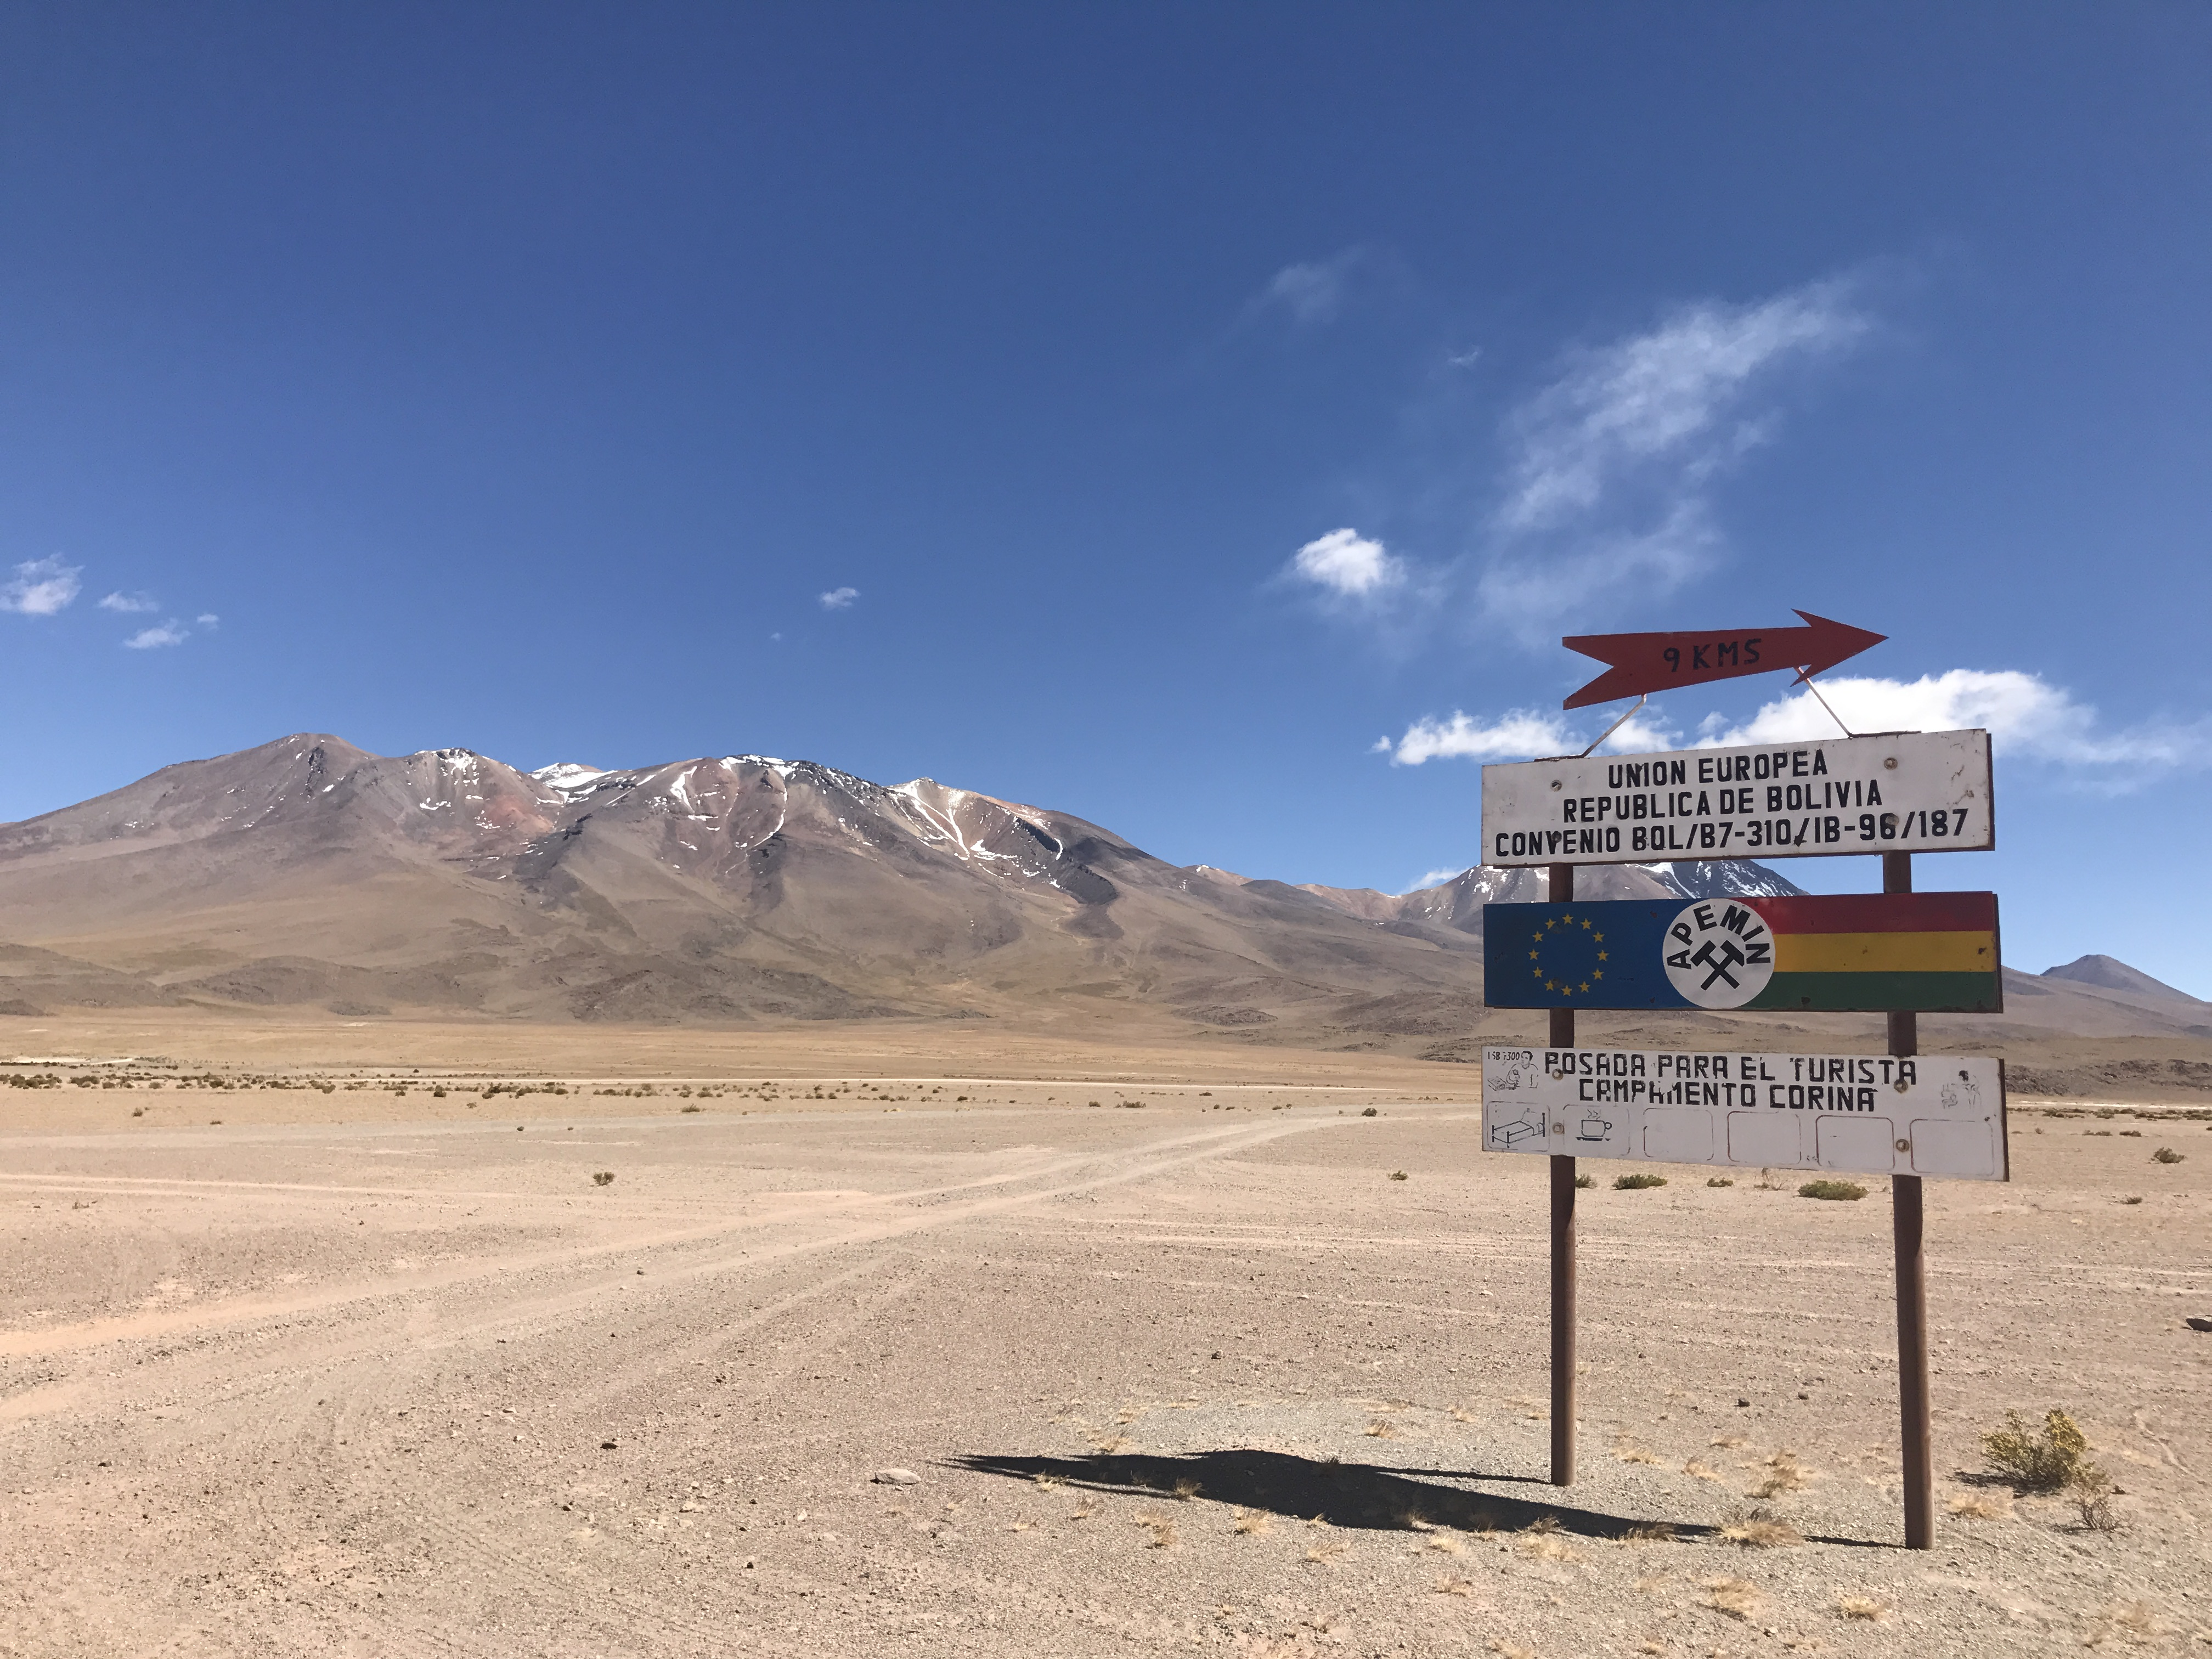 A rare road sign in Bolivia